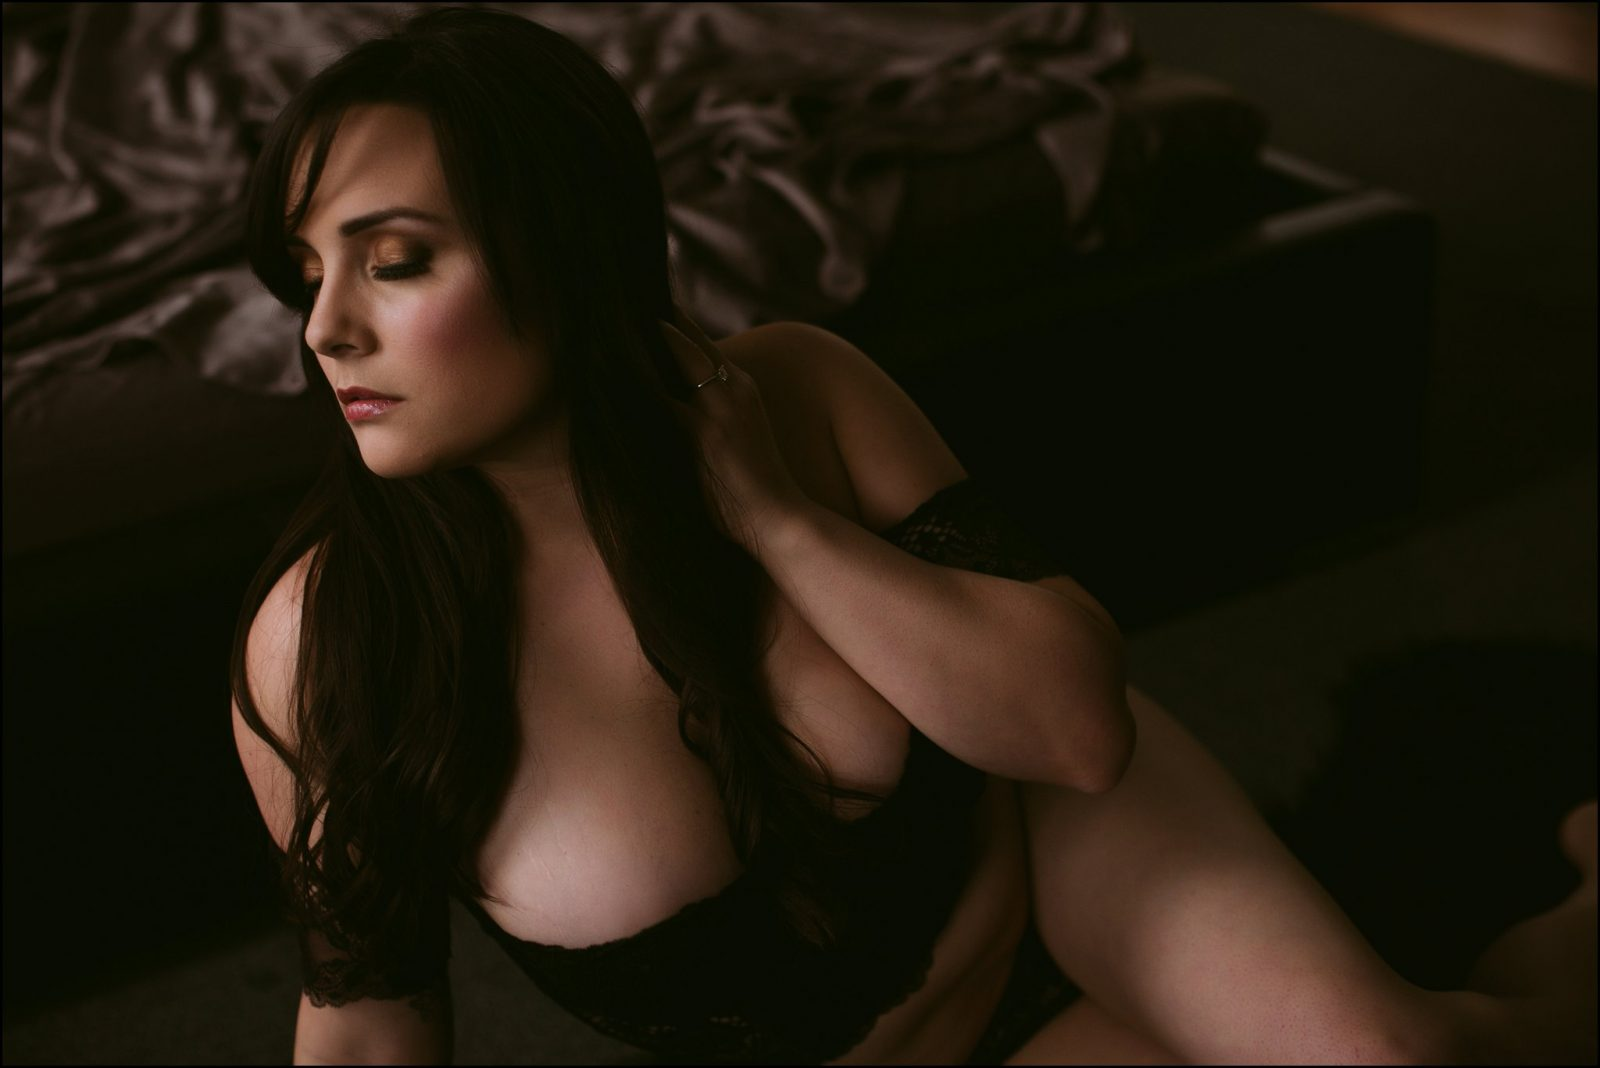 sf boudoir photographer